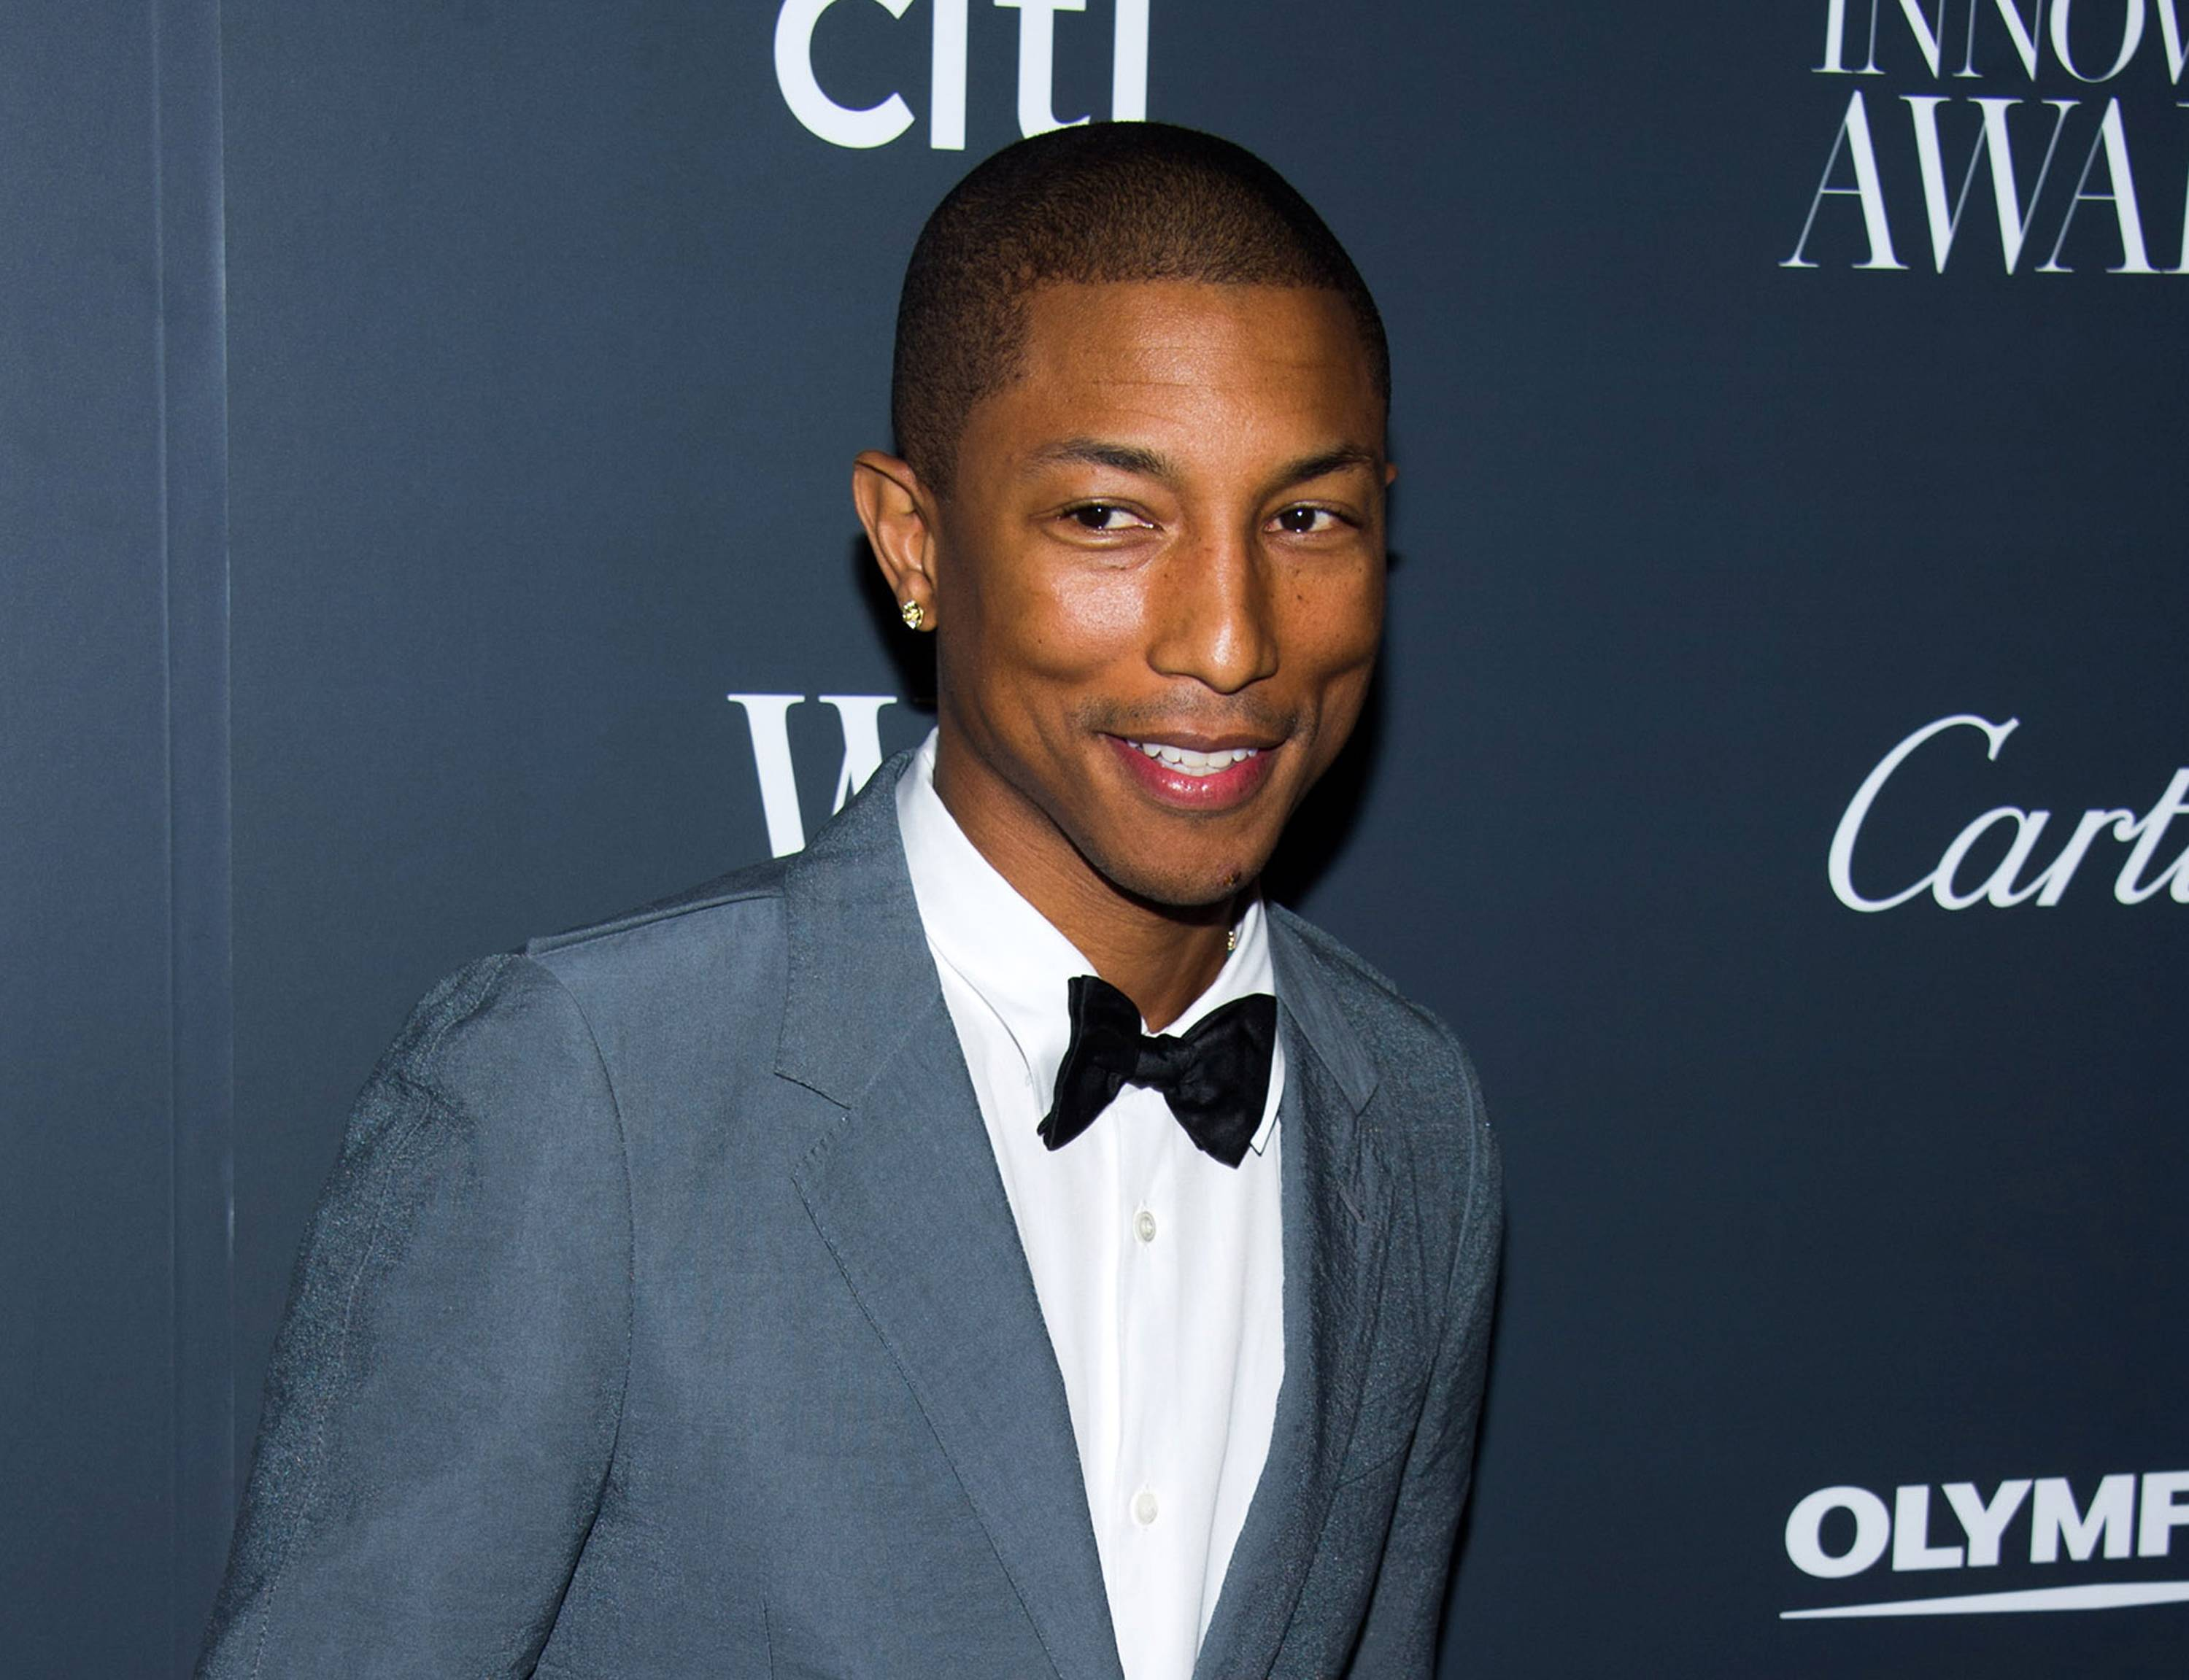 Pharrell Williams' favorite producing collaborations include his work with Usher and Daft Punk.